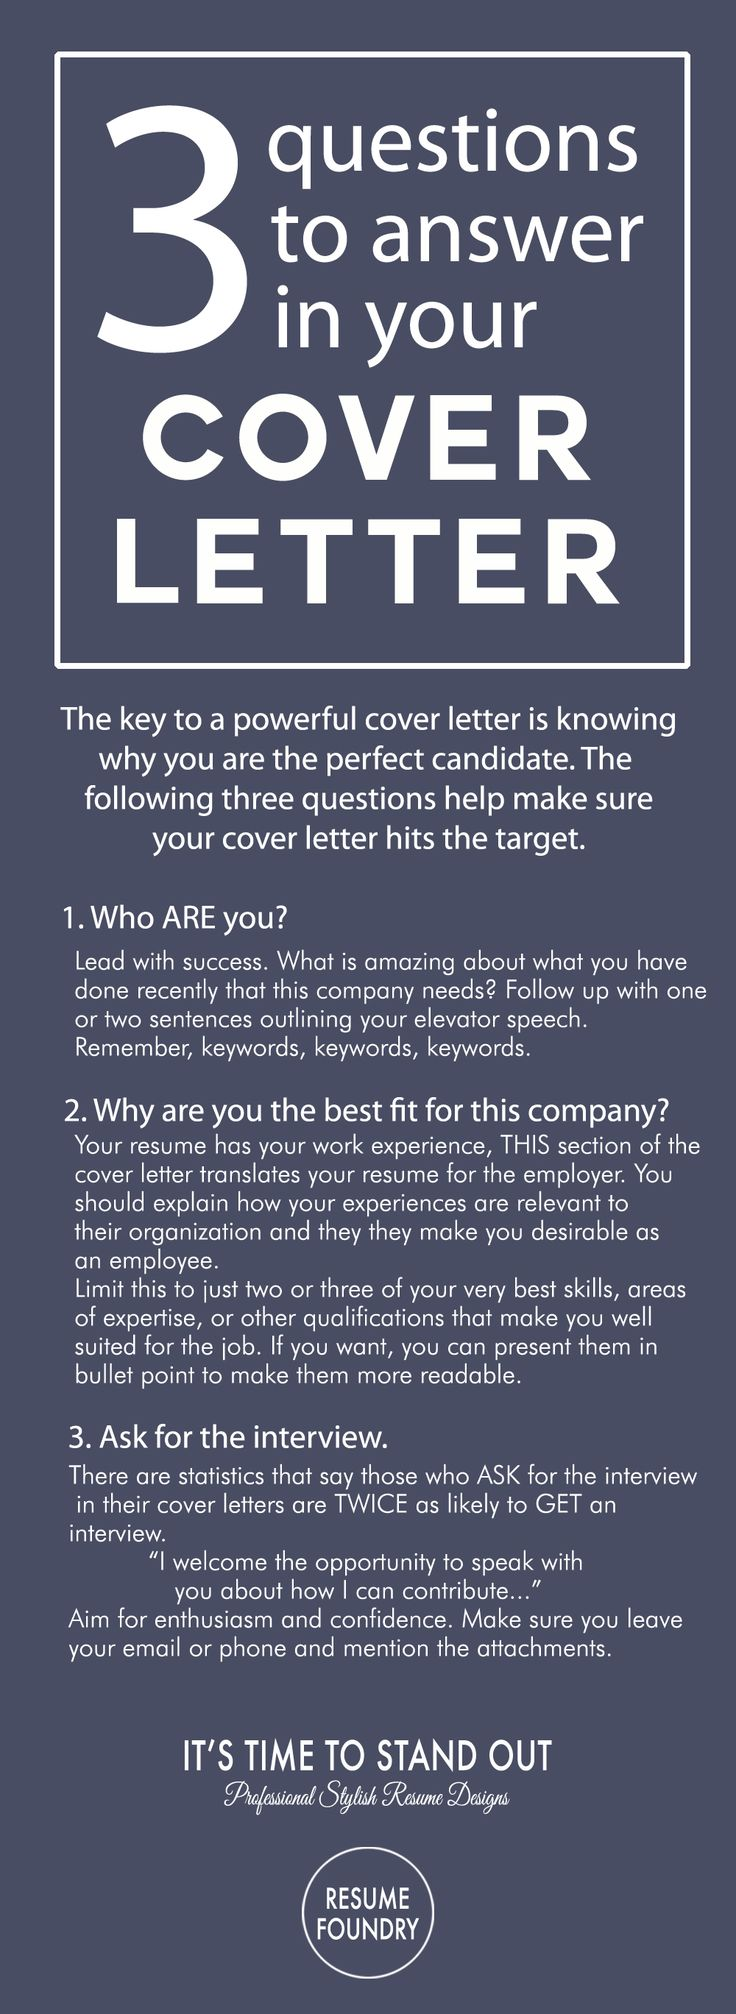 cover letter tips outline how to write a cover letter. Resume Example. Resume CV Cover Letter